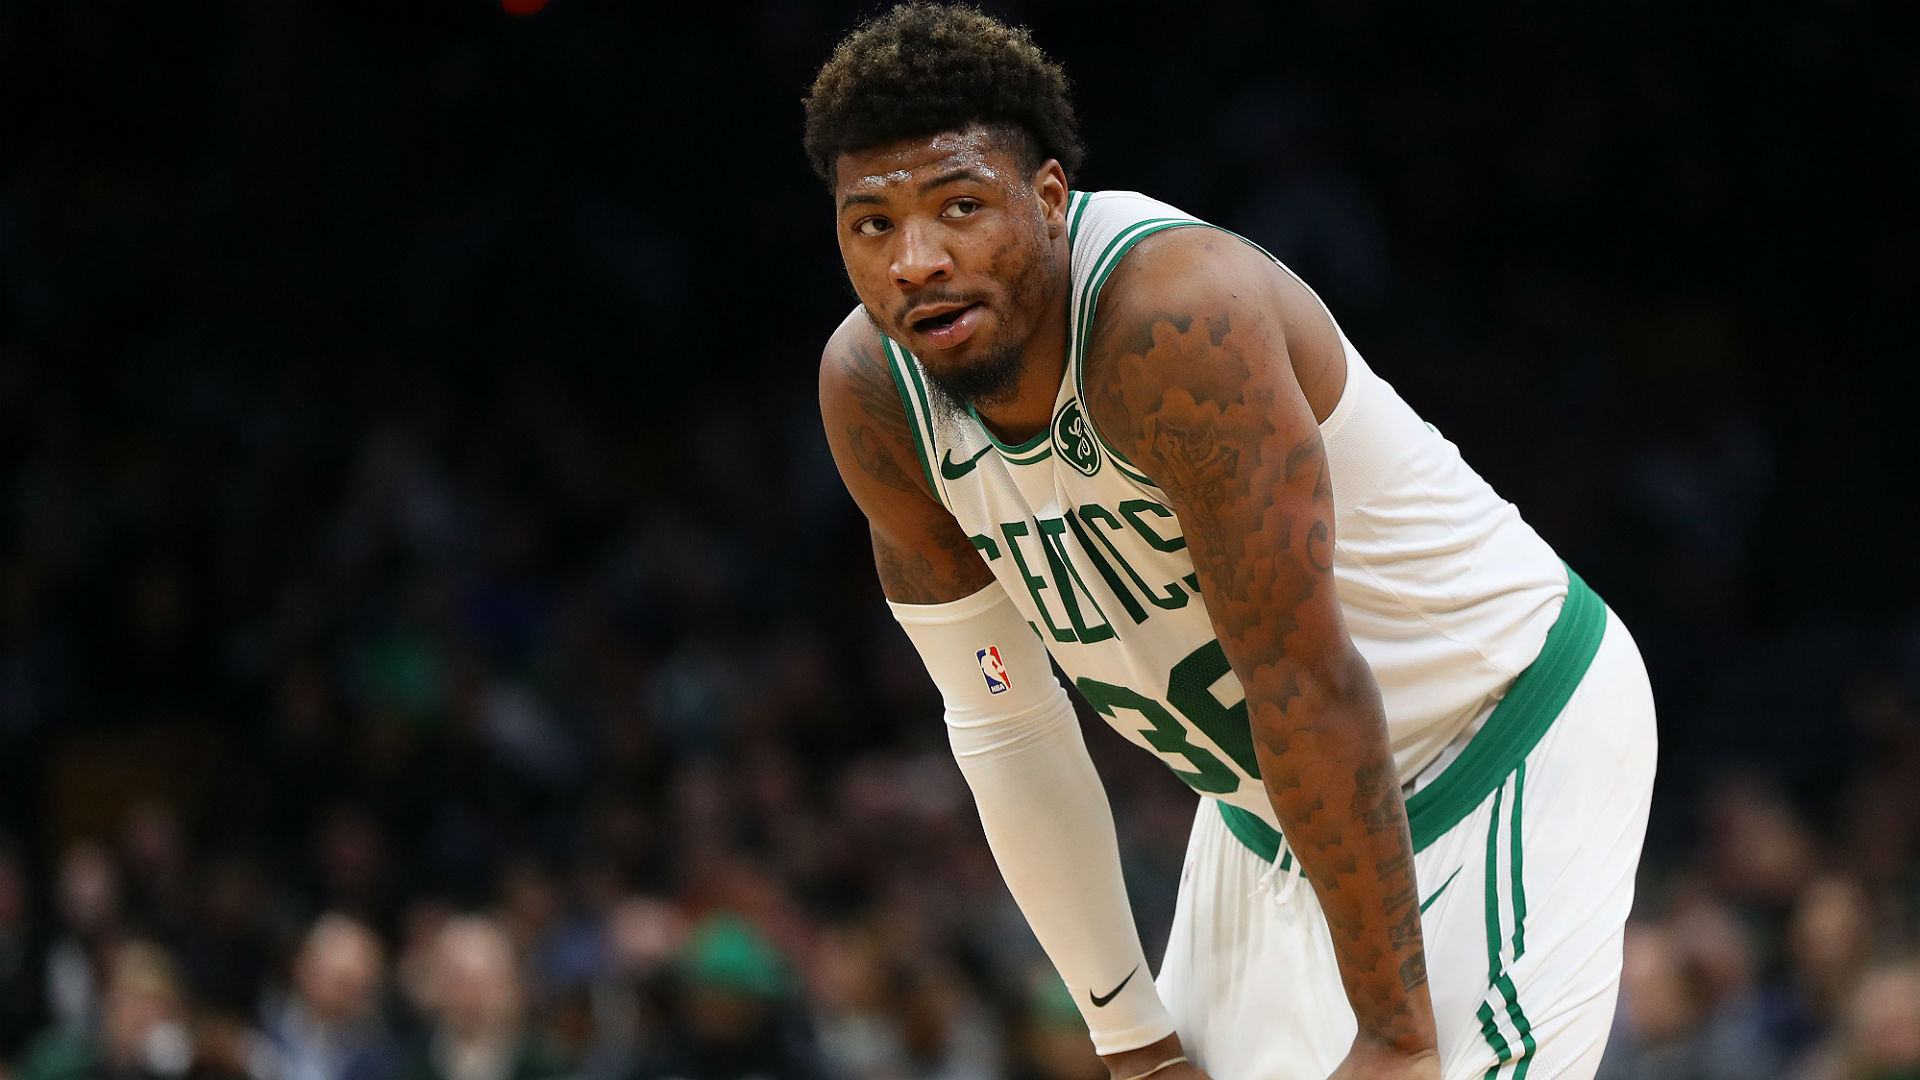 Celtics' Smart fined $50k after shoving 76ers star Embiid